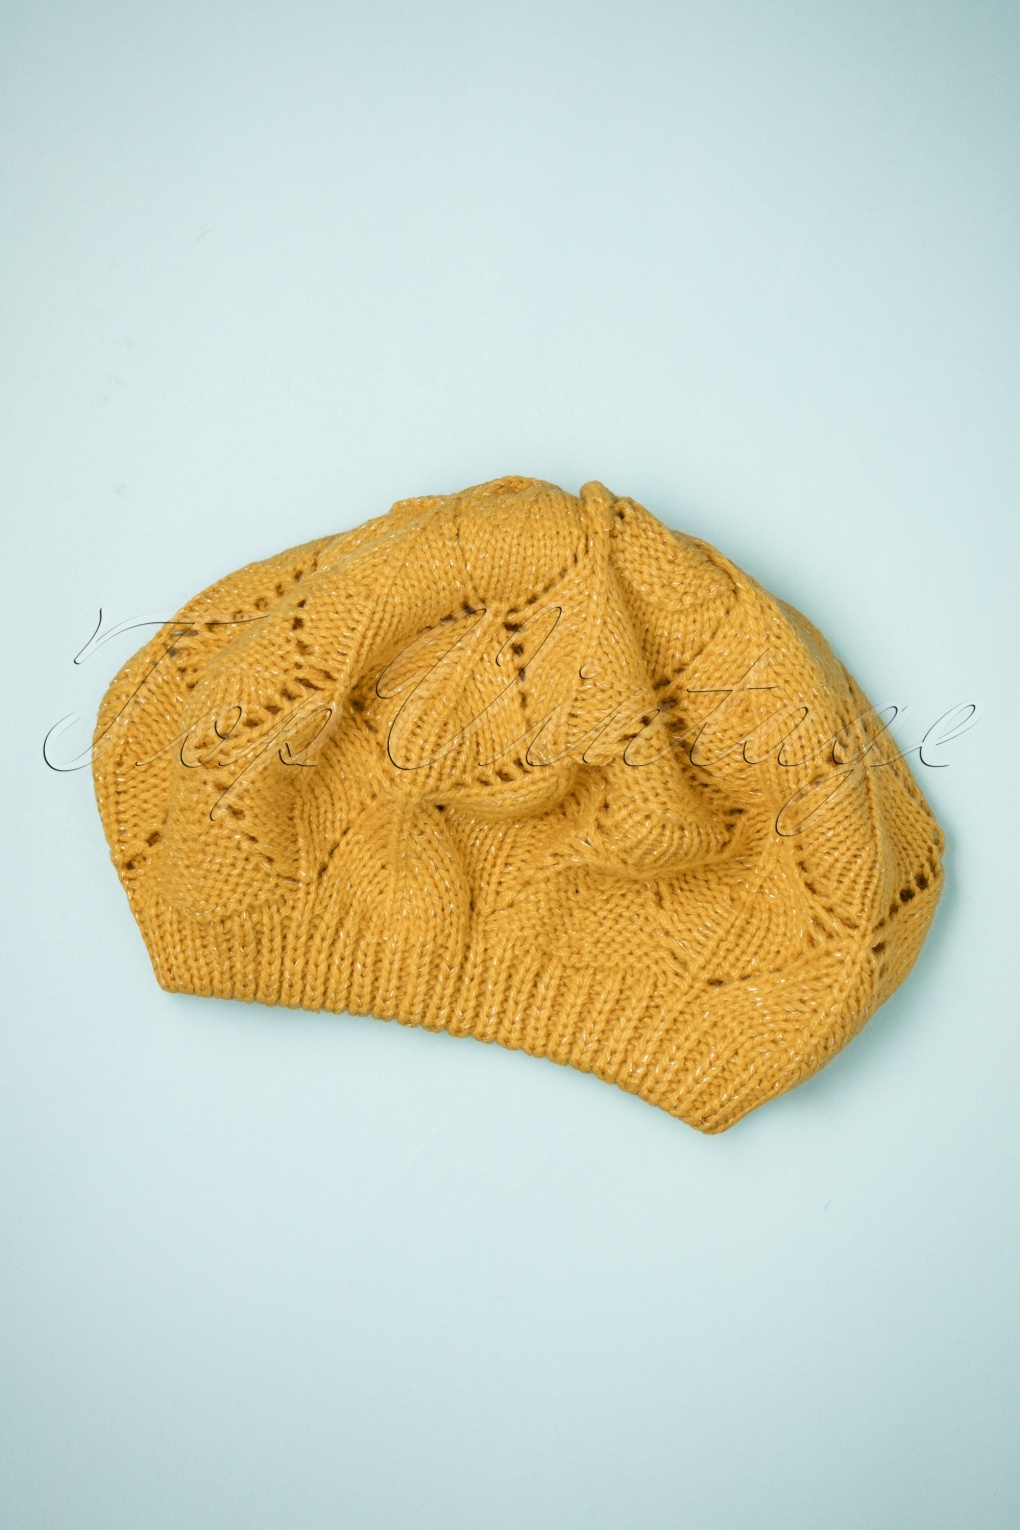 Women's Vintage Hats | Old Fashioned Hats | Retro Hats 70s Betty Beret in Ochre £17.68 AT vintagedancer.com